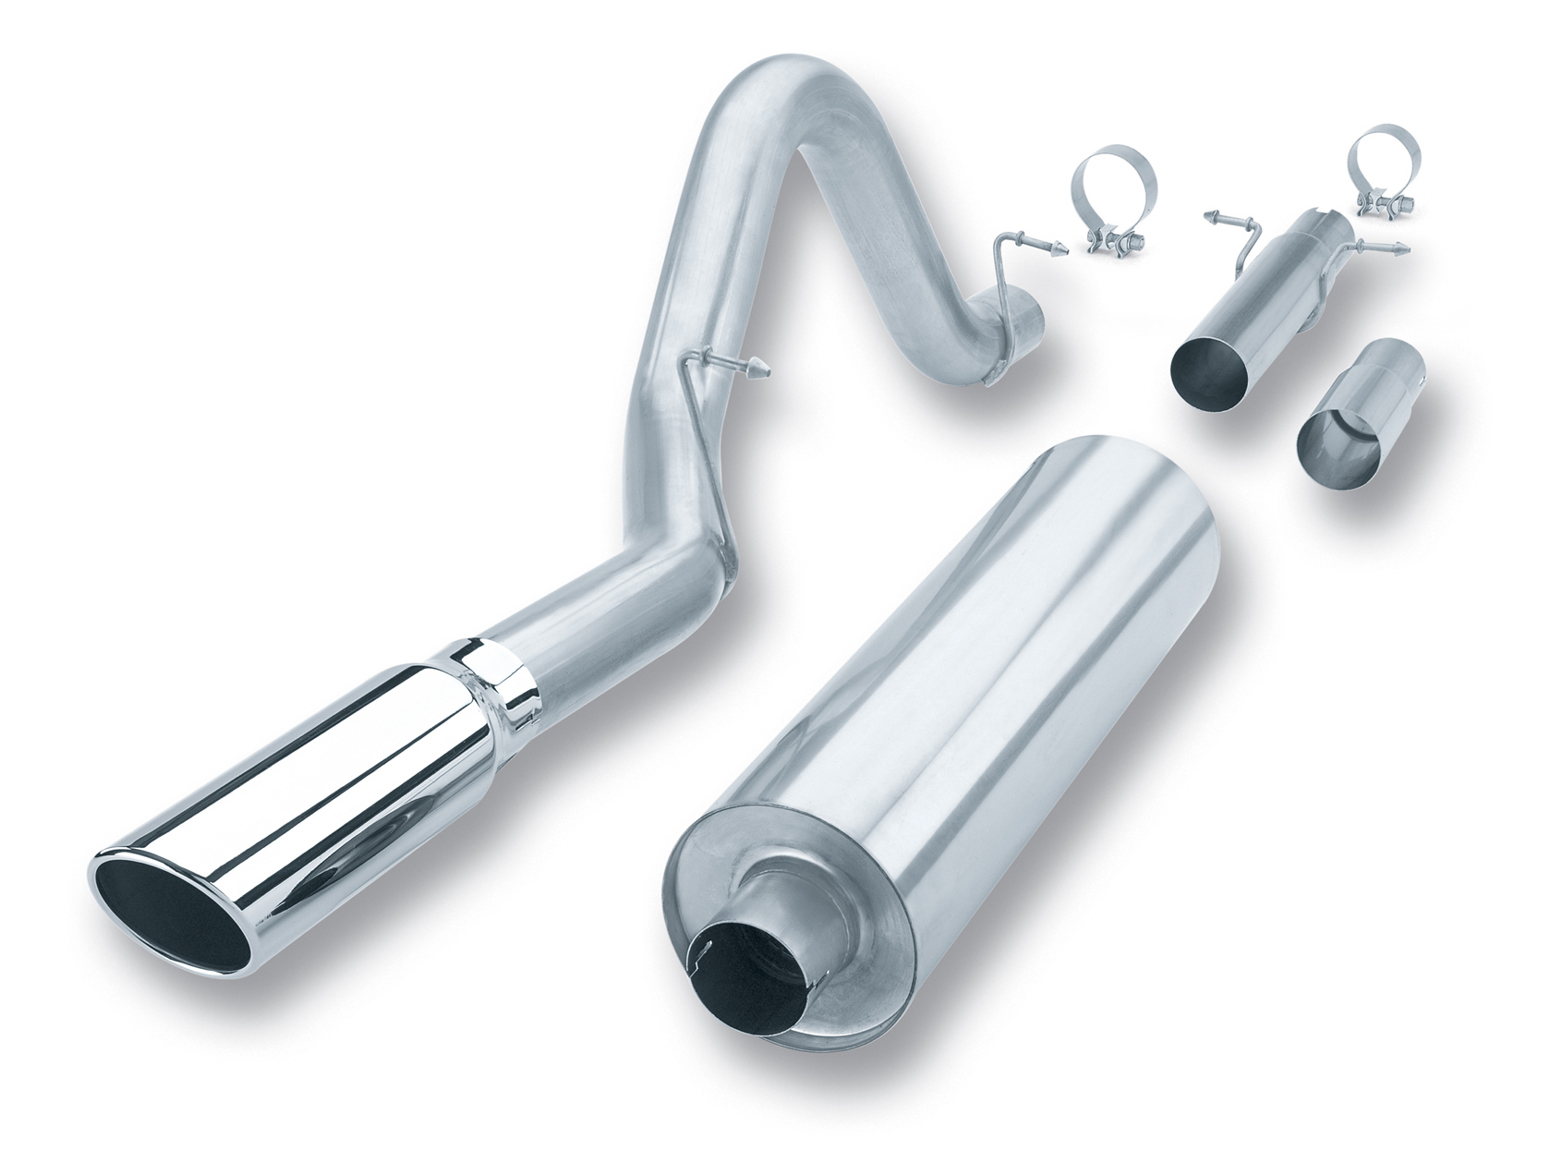 Dodge Durango 4.7l/5.2l/5.9l V8 1998-2003 Borla 3&#34; Cat-Back Exhaust System - Single Round Rolled Angle-Cut  Long X Single Round Rolled Angle-Cut Intercooled Tips&quot; Dia